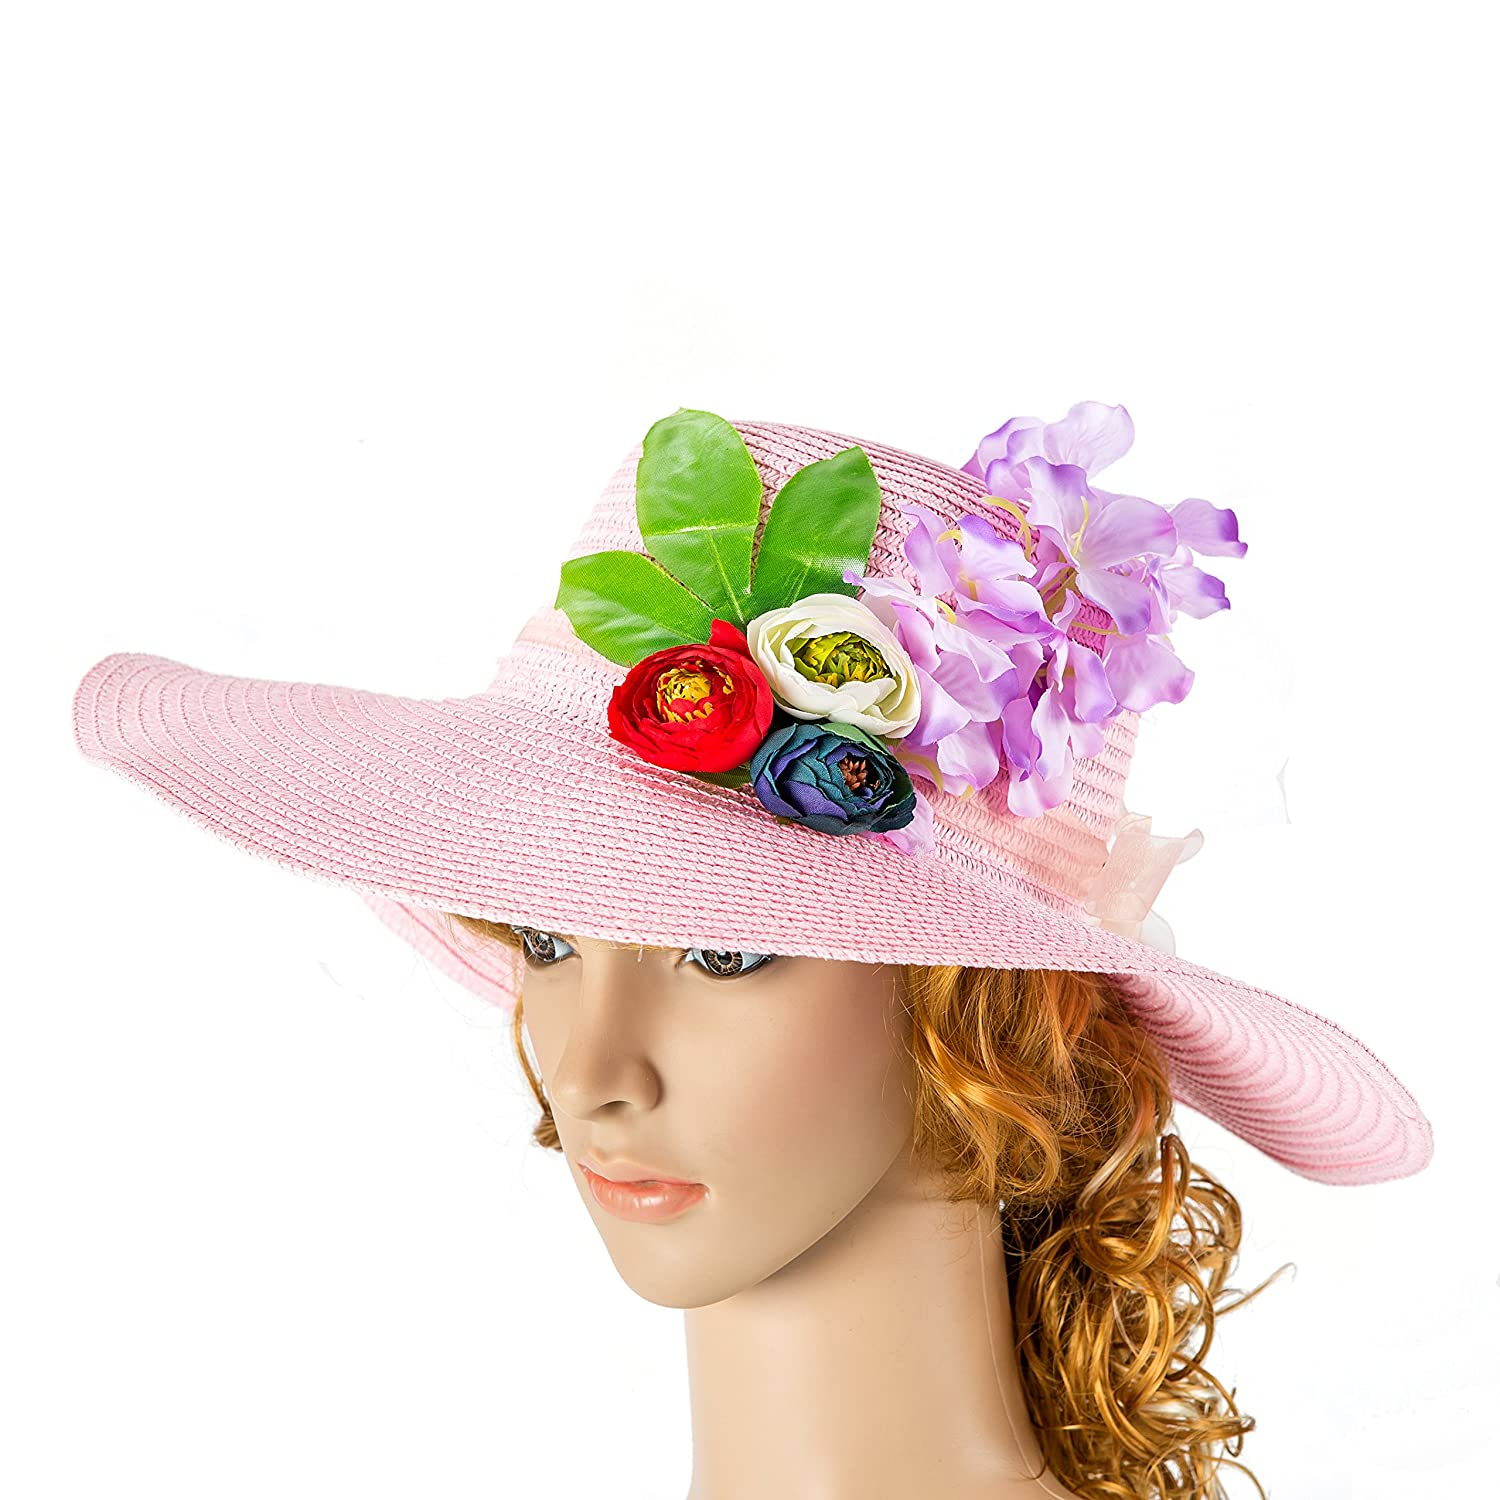 Women Hat powder pink Hat with Real Touch Flowers rose Kentucky Derby Hat Party Summer Hat Women Hat